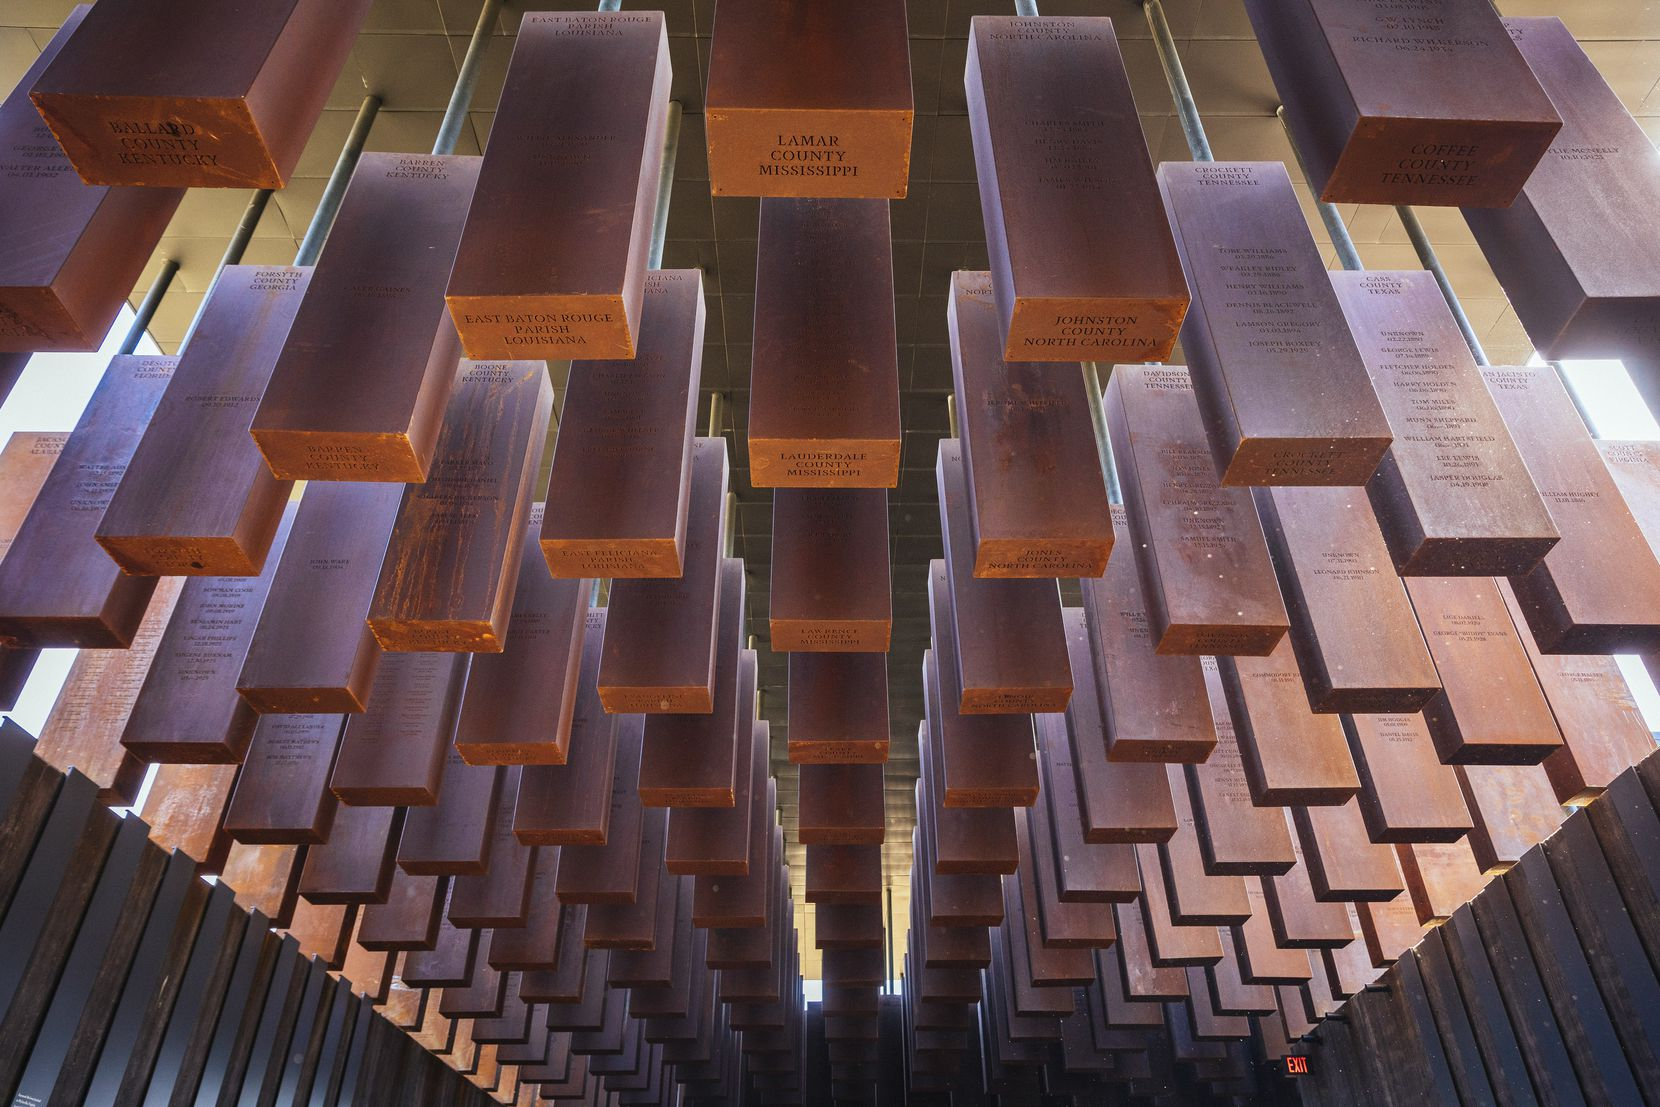 Eight hundred weathered steel columns, each one etched with the names of lynching victims, hang from the roof of the National Memorial for Peace and Justice in Montgomery, Ala.